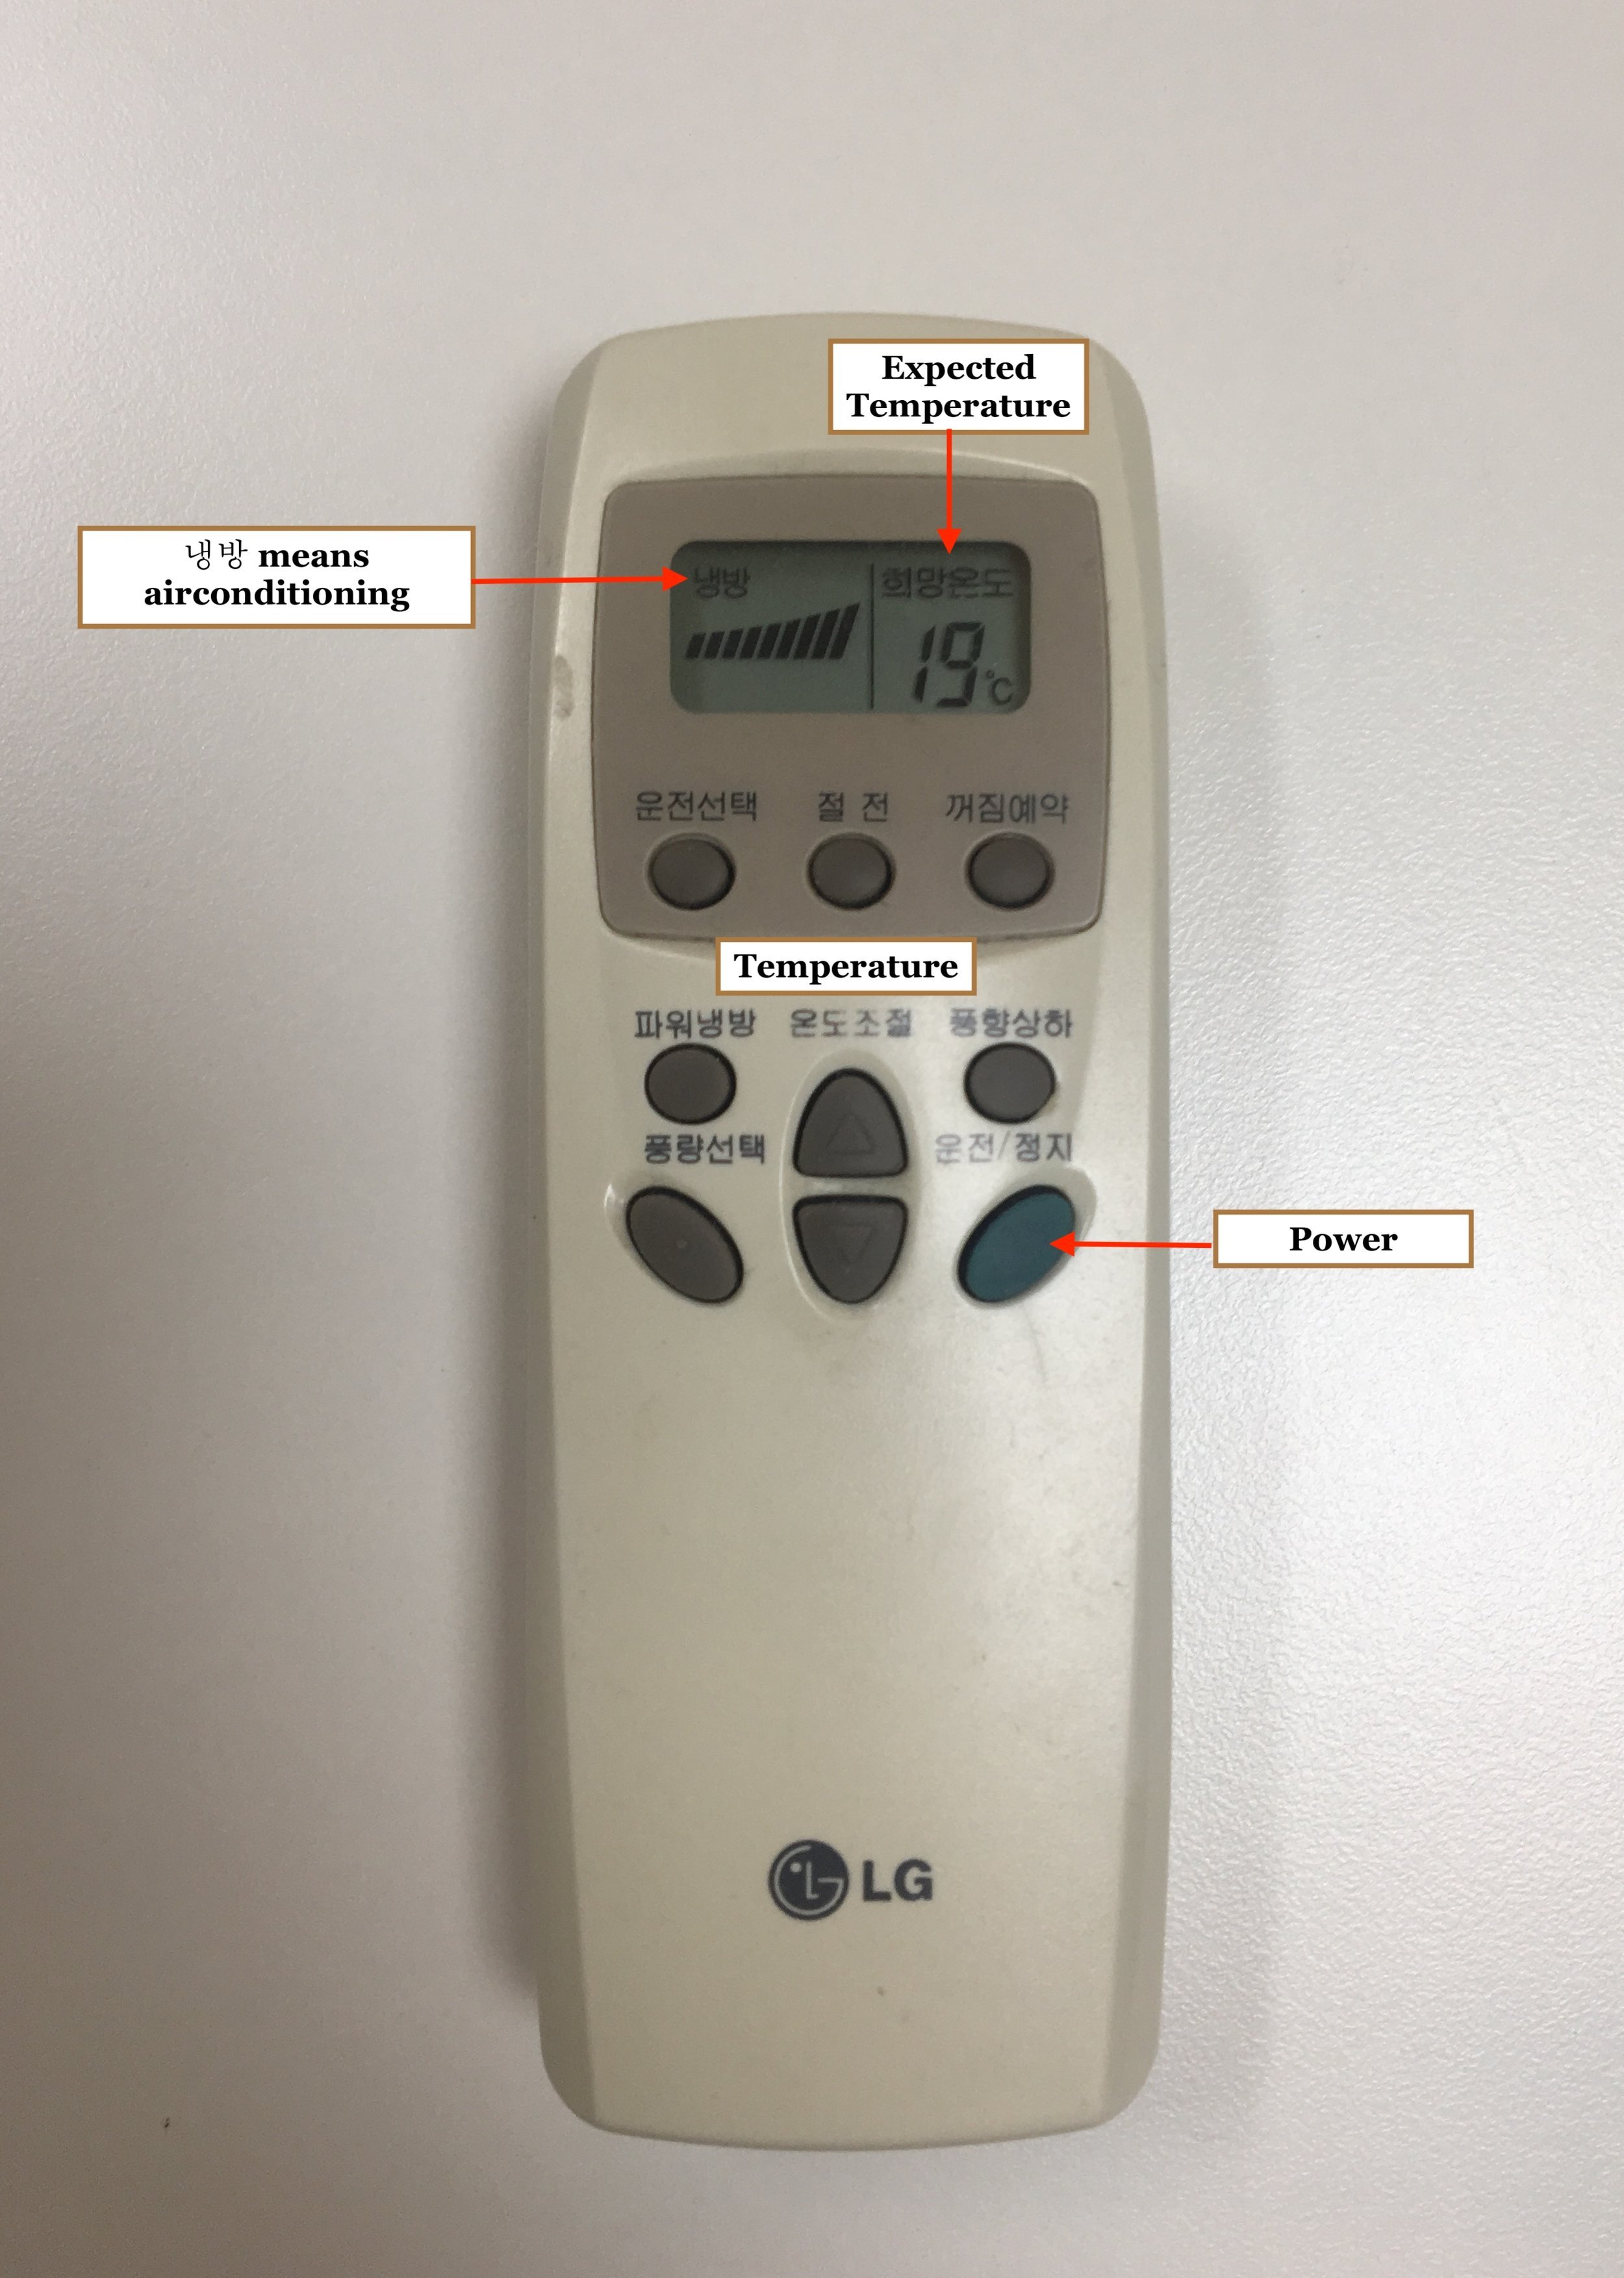 How to use airconditioner remote - 전원 is POWER | 냉방 is airconditioningIF the room is not cool enough, please check if it's on 냉방. You can control that button with 운전선택 on the very top left. Also, you can control temperature by arrows in the middle.* Please make sure that the window to the balcony should be closed. Also, please make sure to open the window outside the balcony.